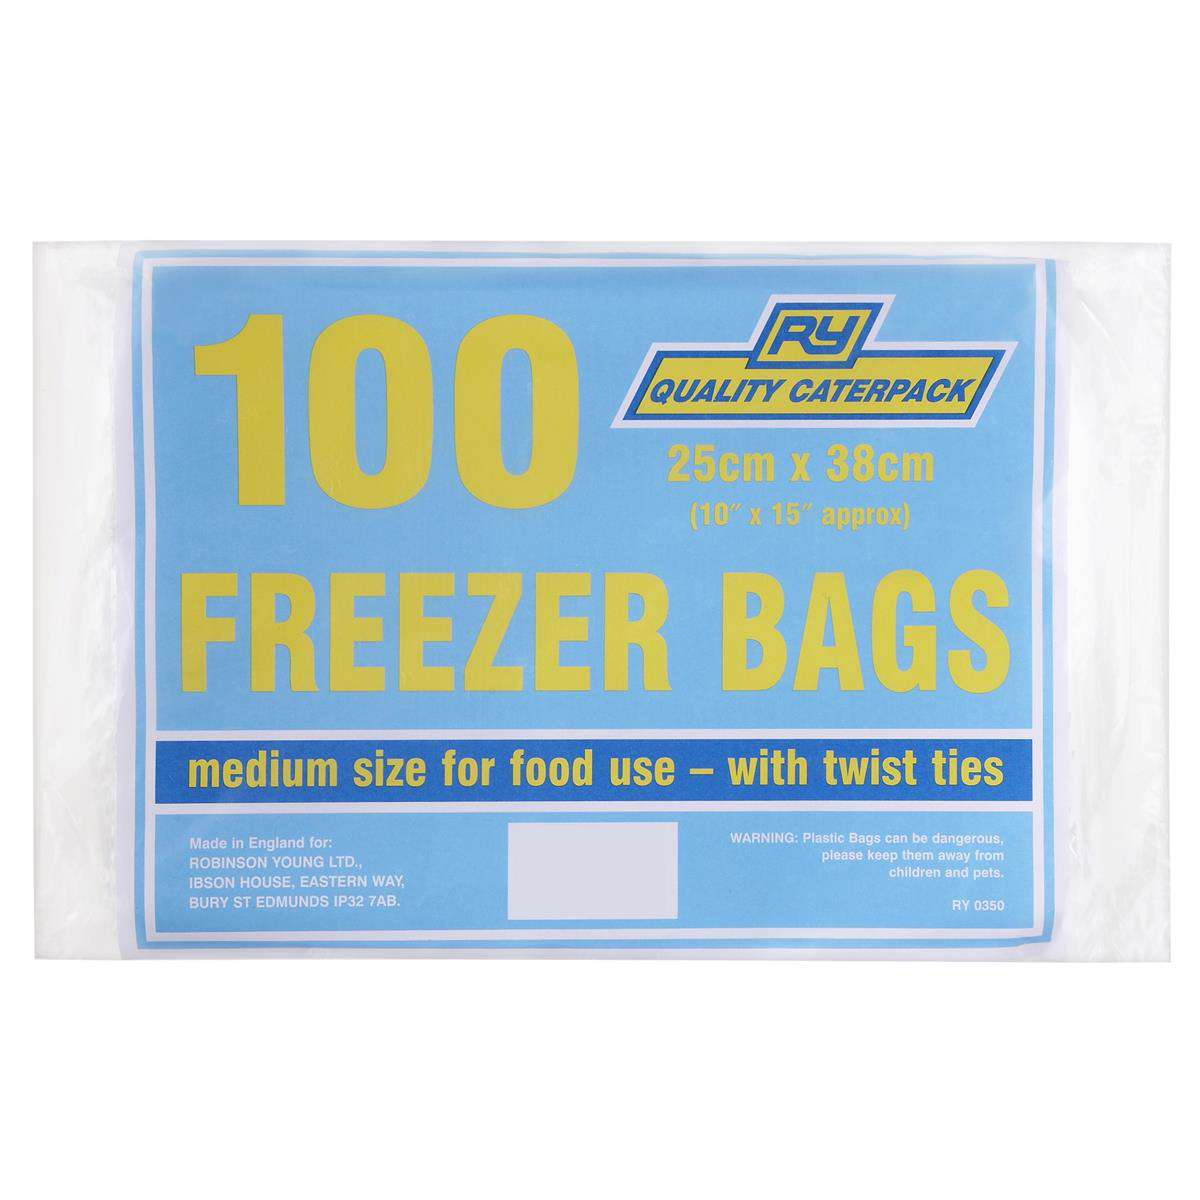 CaterPack Food/Freezer Bags Medium 250mm with Twist Ties Ref 360 [Pack 100]